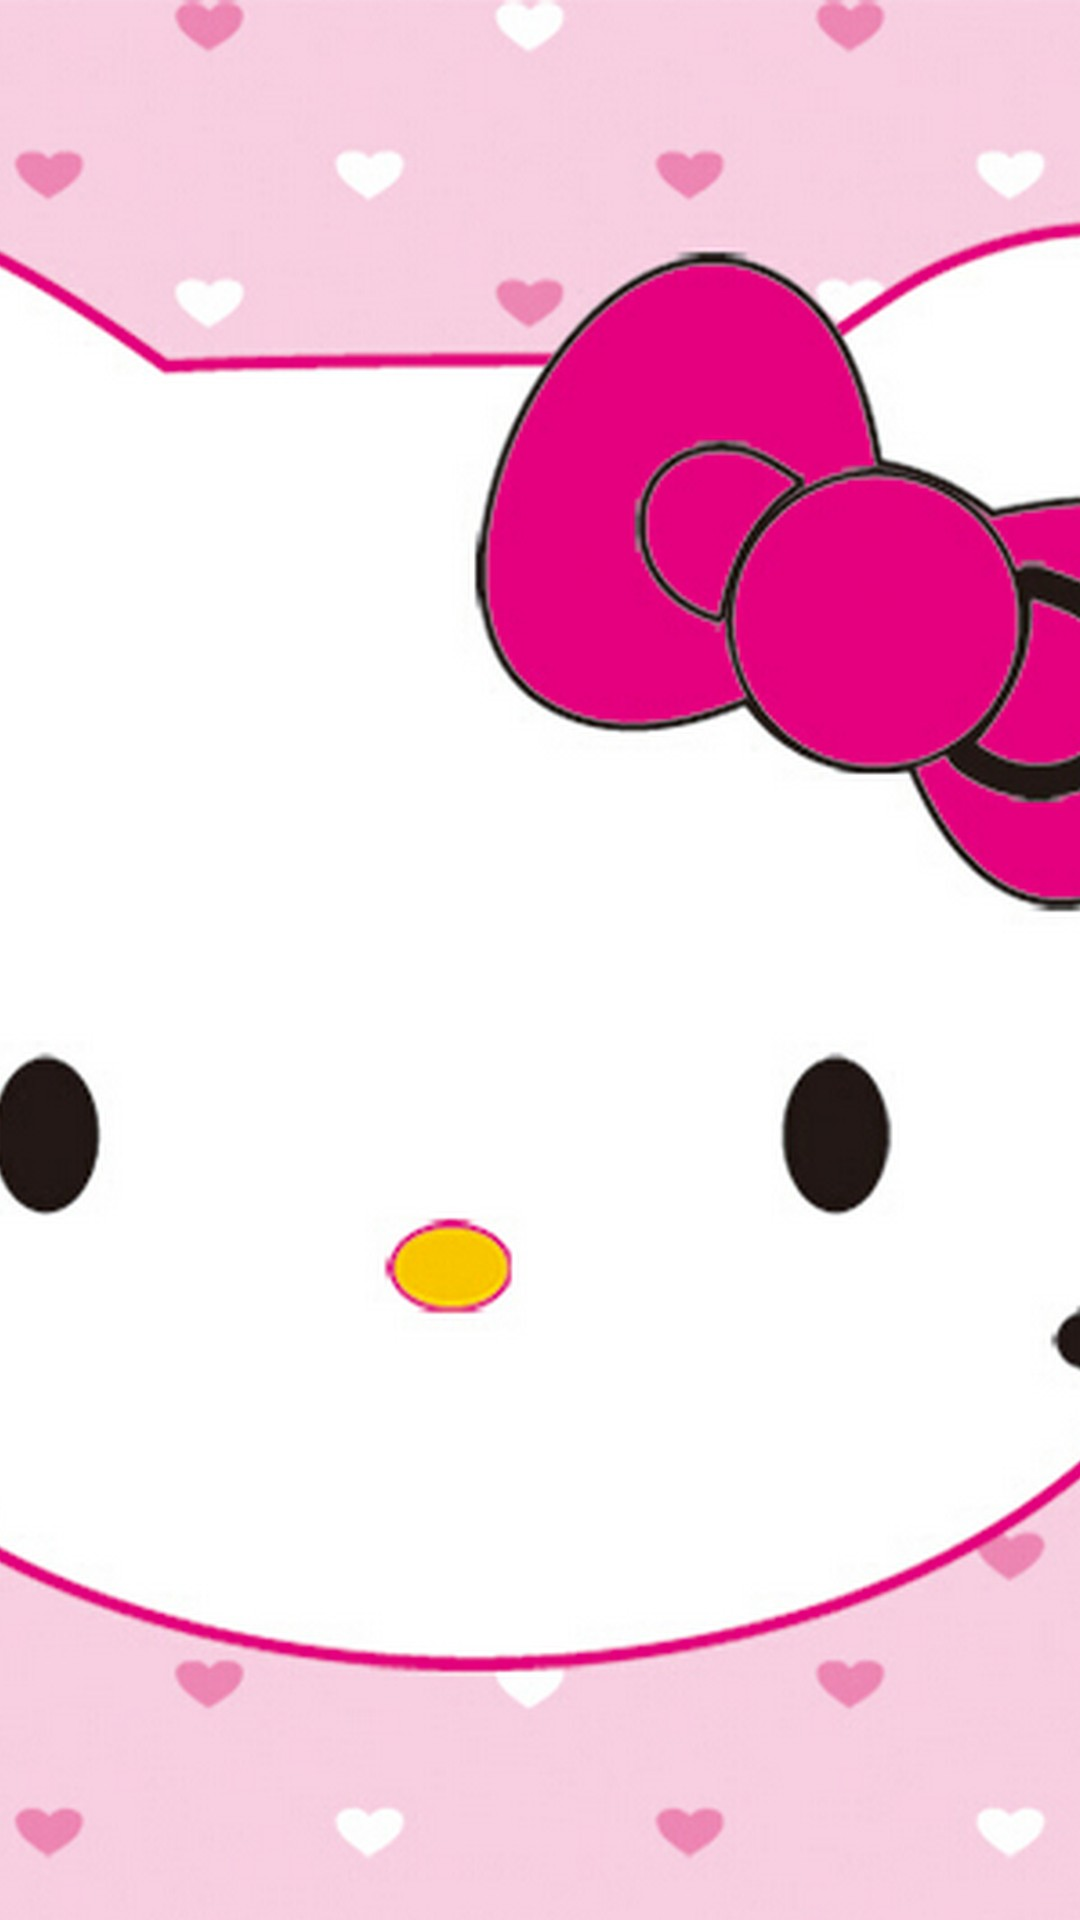 Wallpaper Hello Kitty Pink Posted By Sarah Tremblay